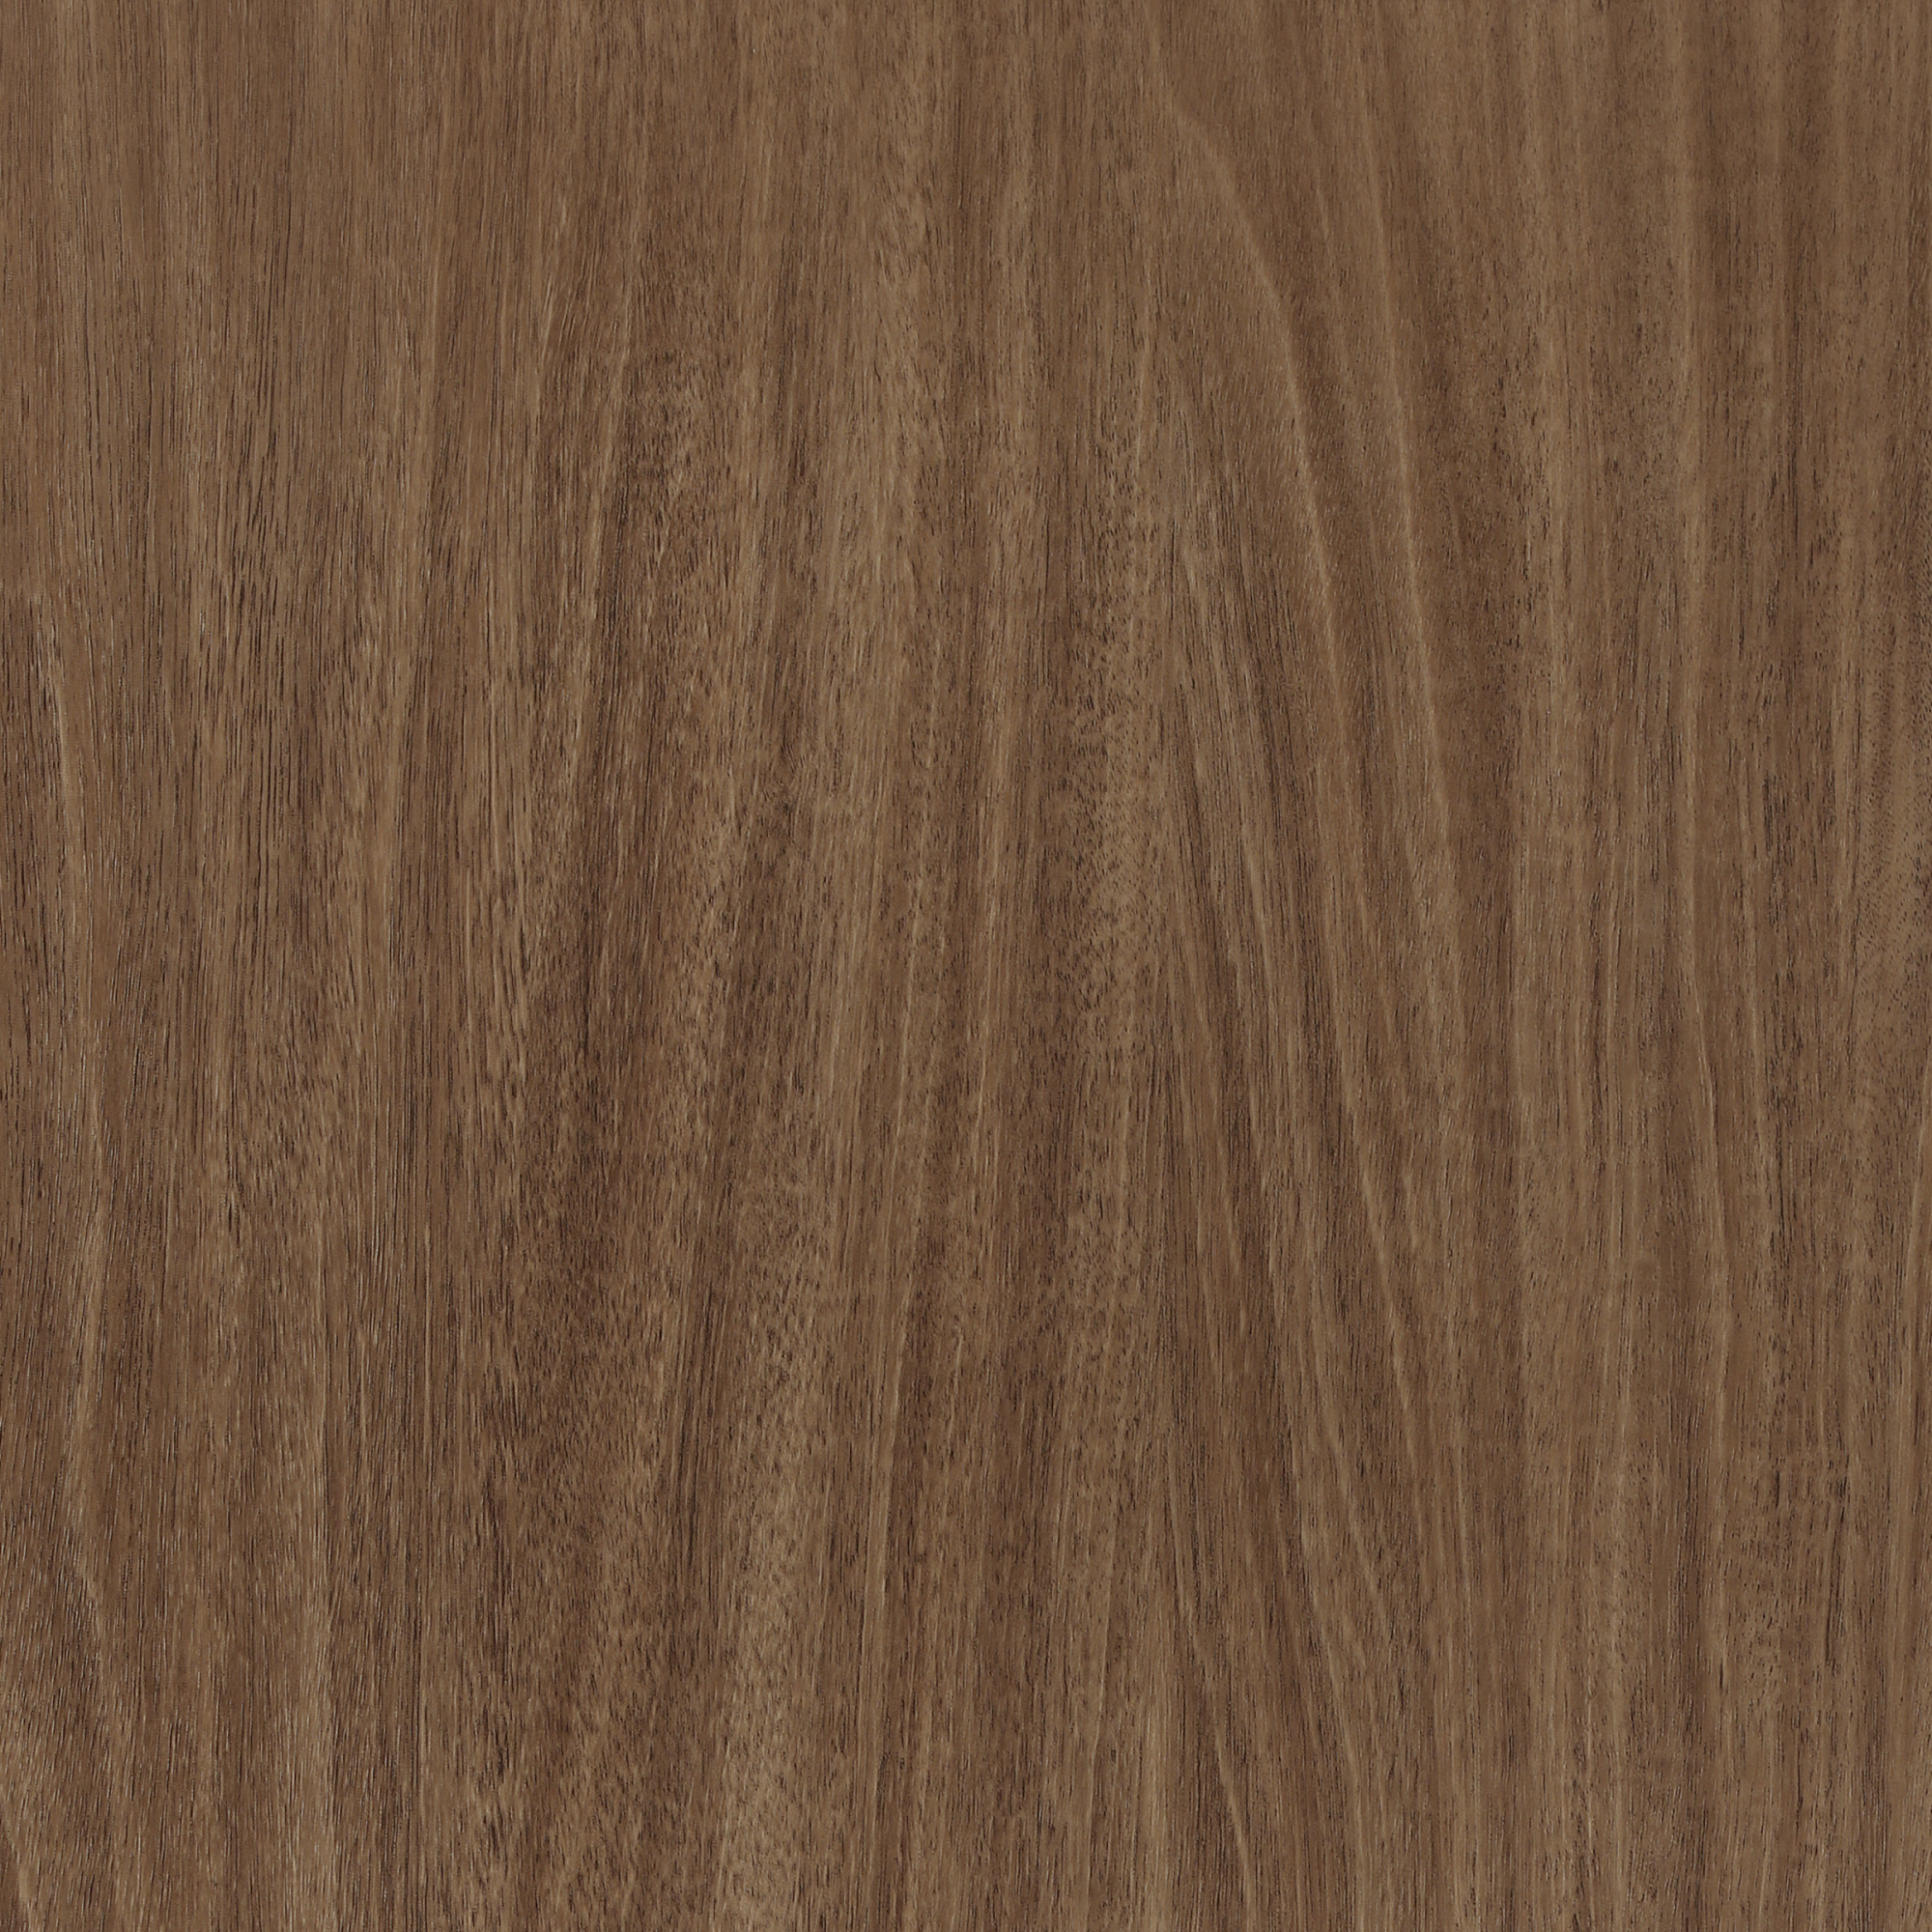 Image for Weathered Walnut from SmartMoves